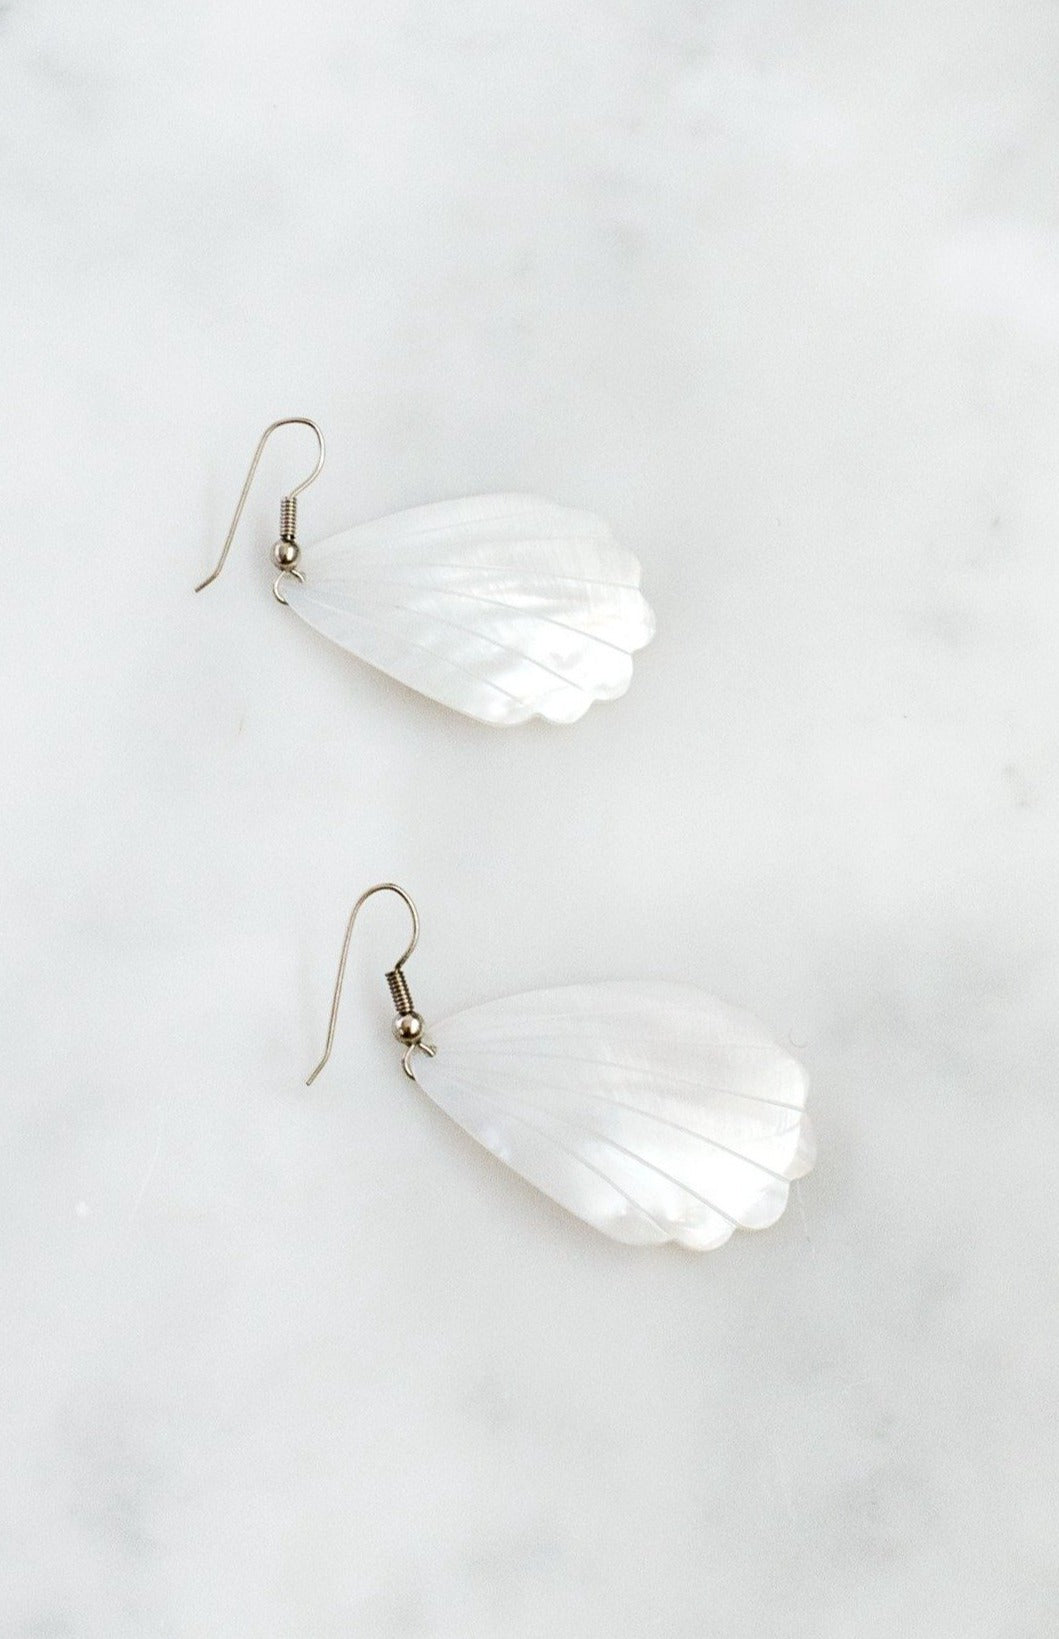 Mother-of-pearl shell earrings with engraved scalloped-edge design and silver-tone wire fastening.